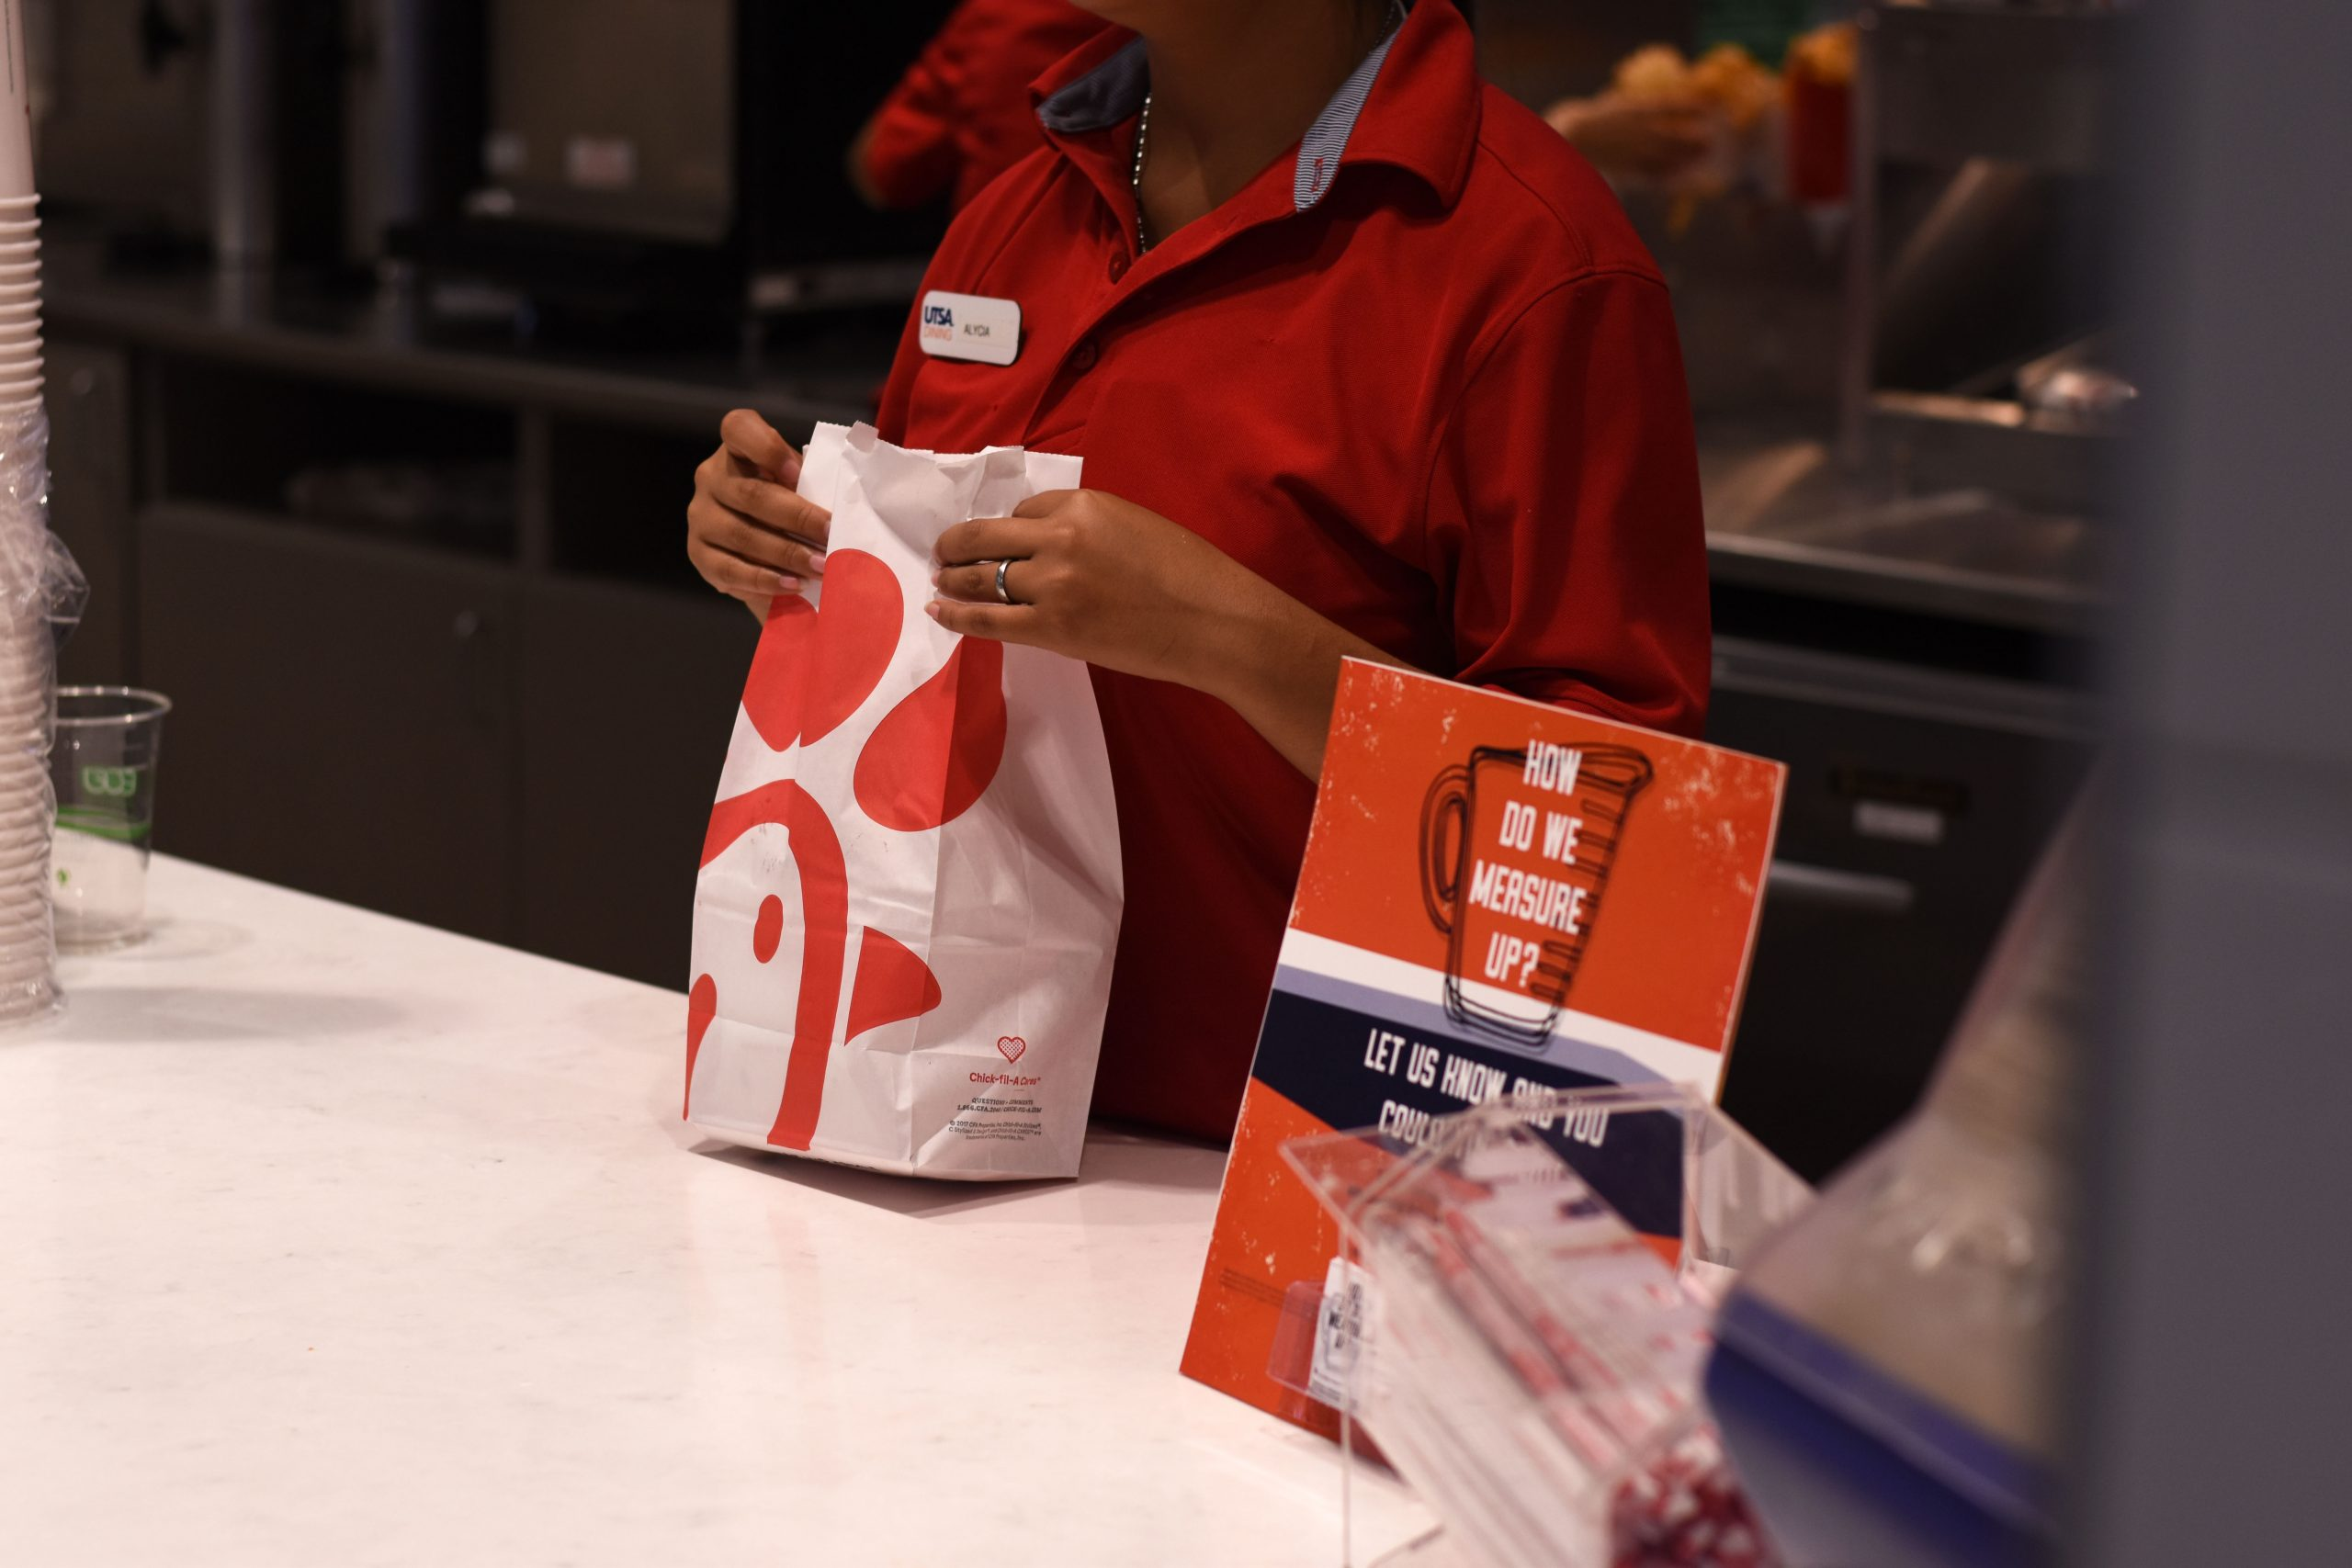 Chick-fil-A excluded from approved airport food vendors for the San Antonio International Airport. Jack Myer /The Paisano